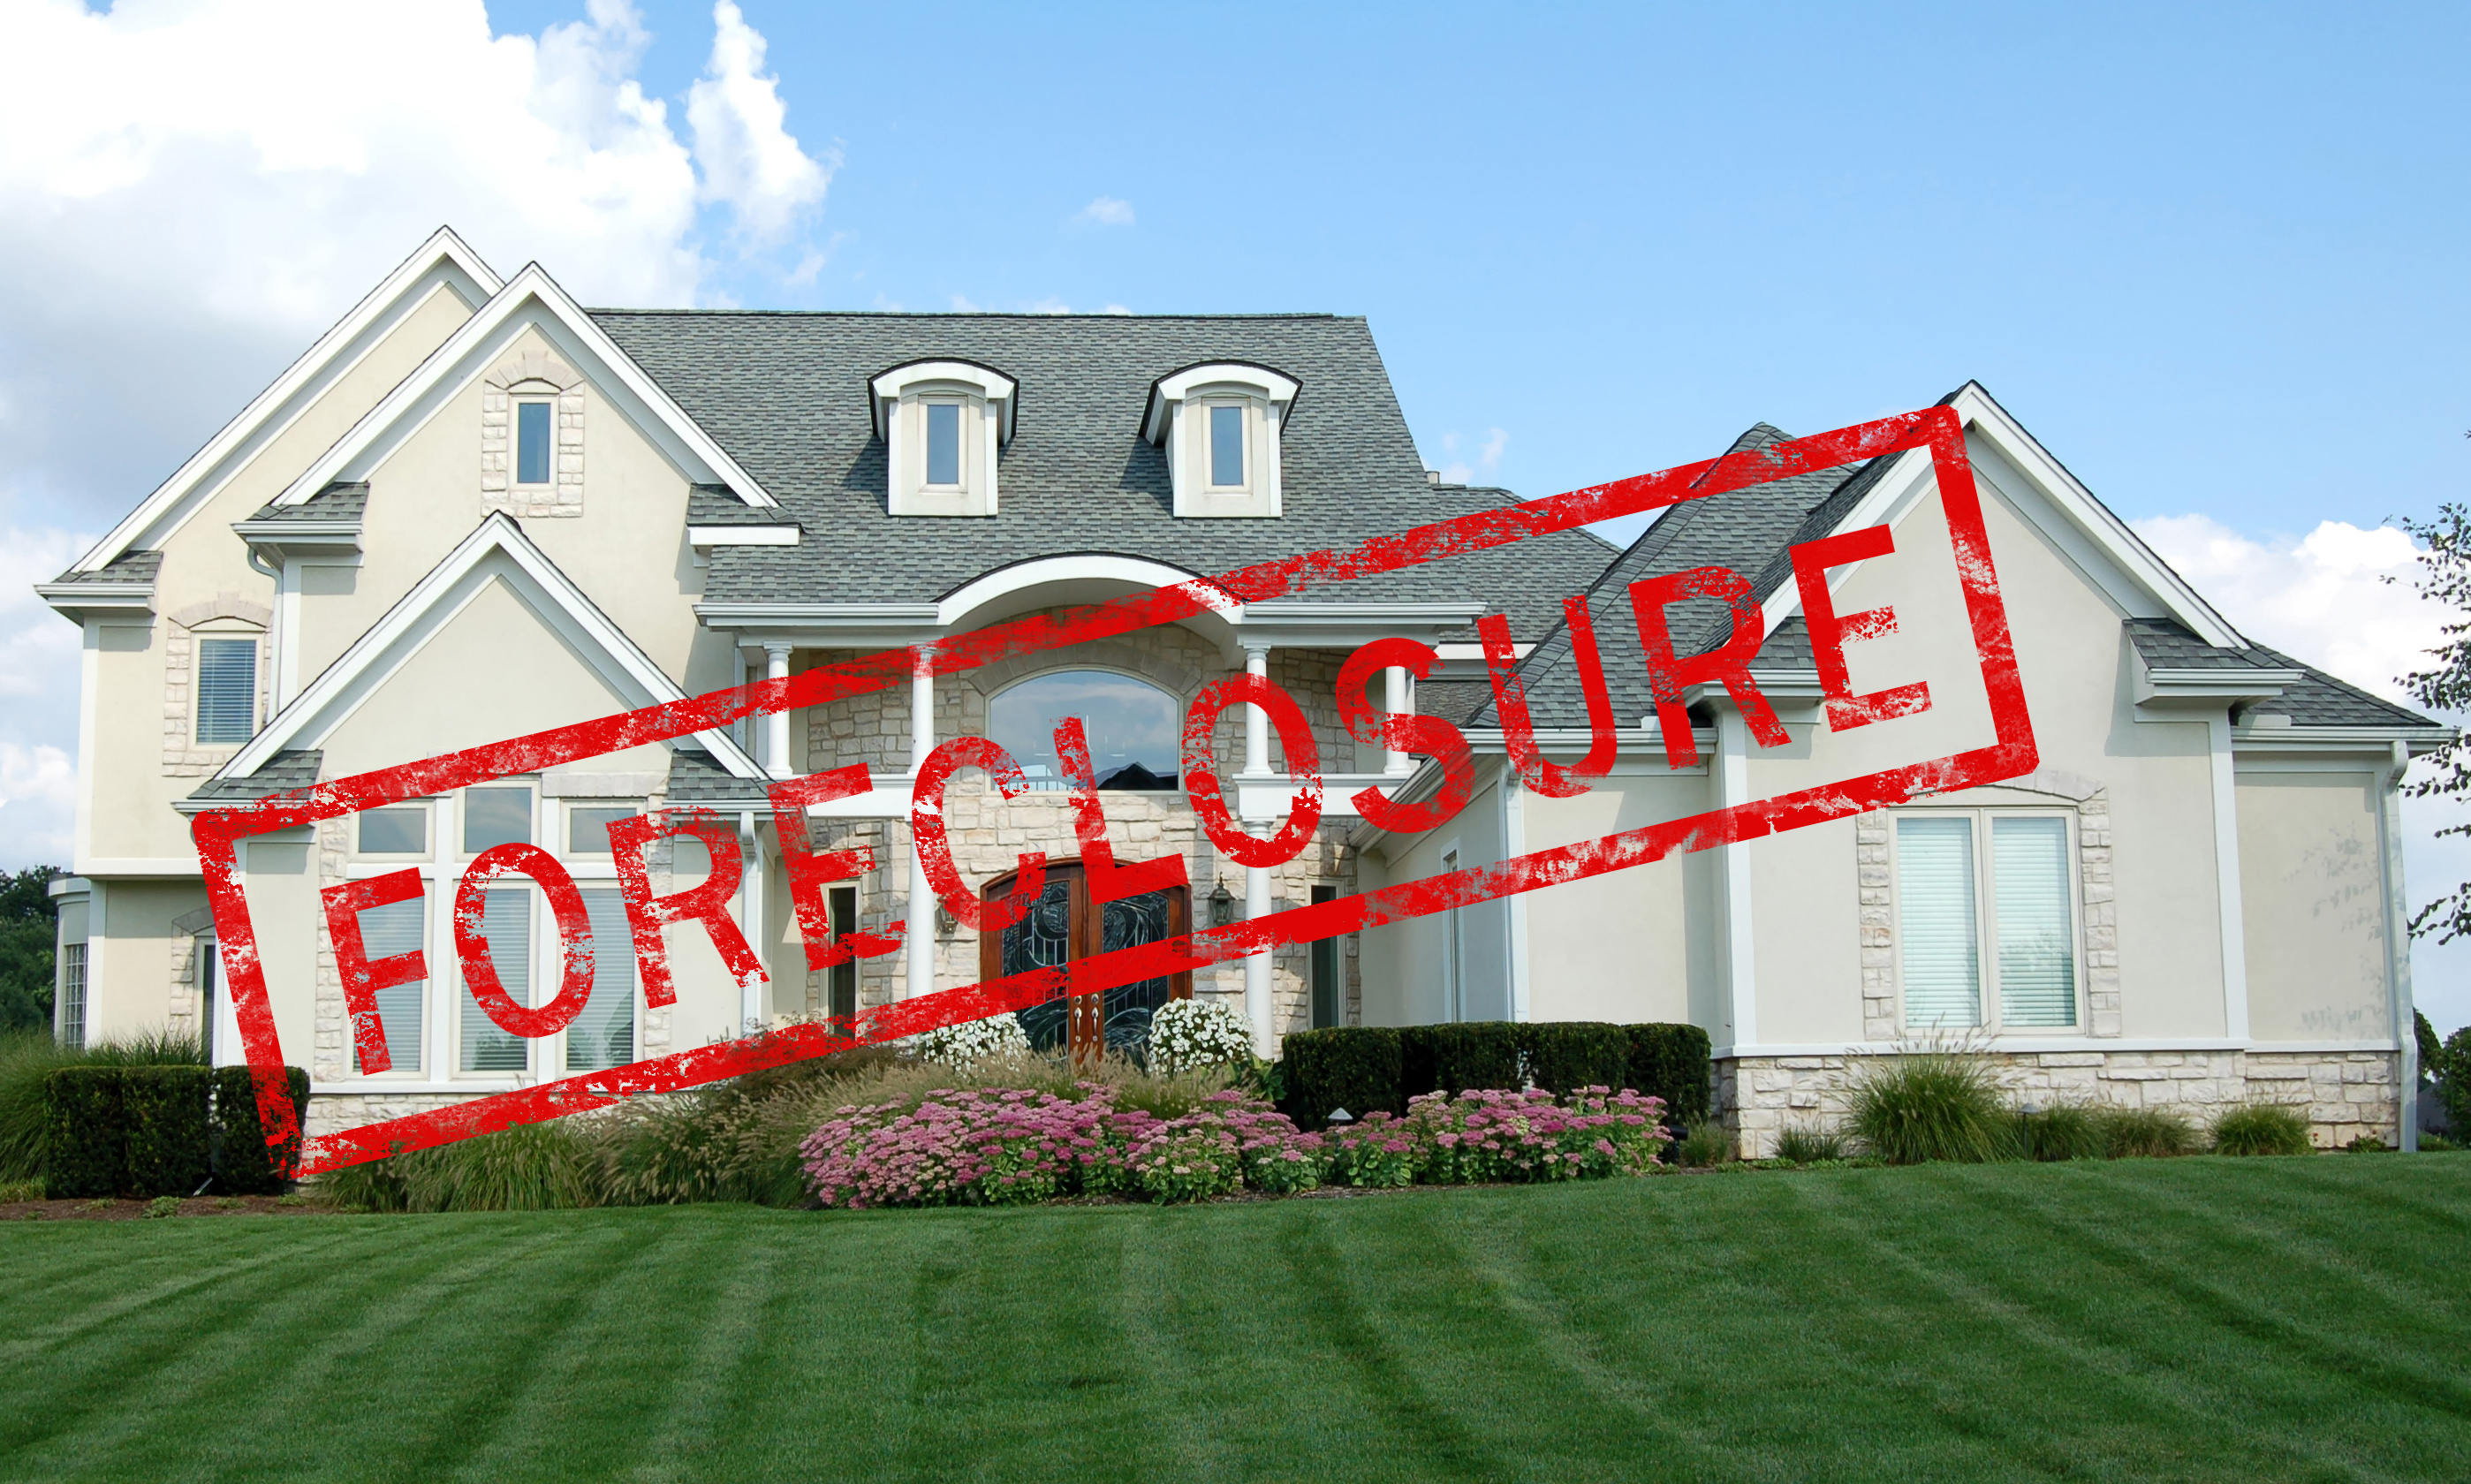 Call Southeastern Valuation, LLC to order appraisals regarding Jefferson foreclosures